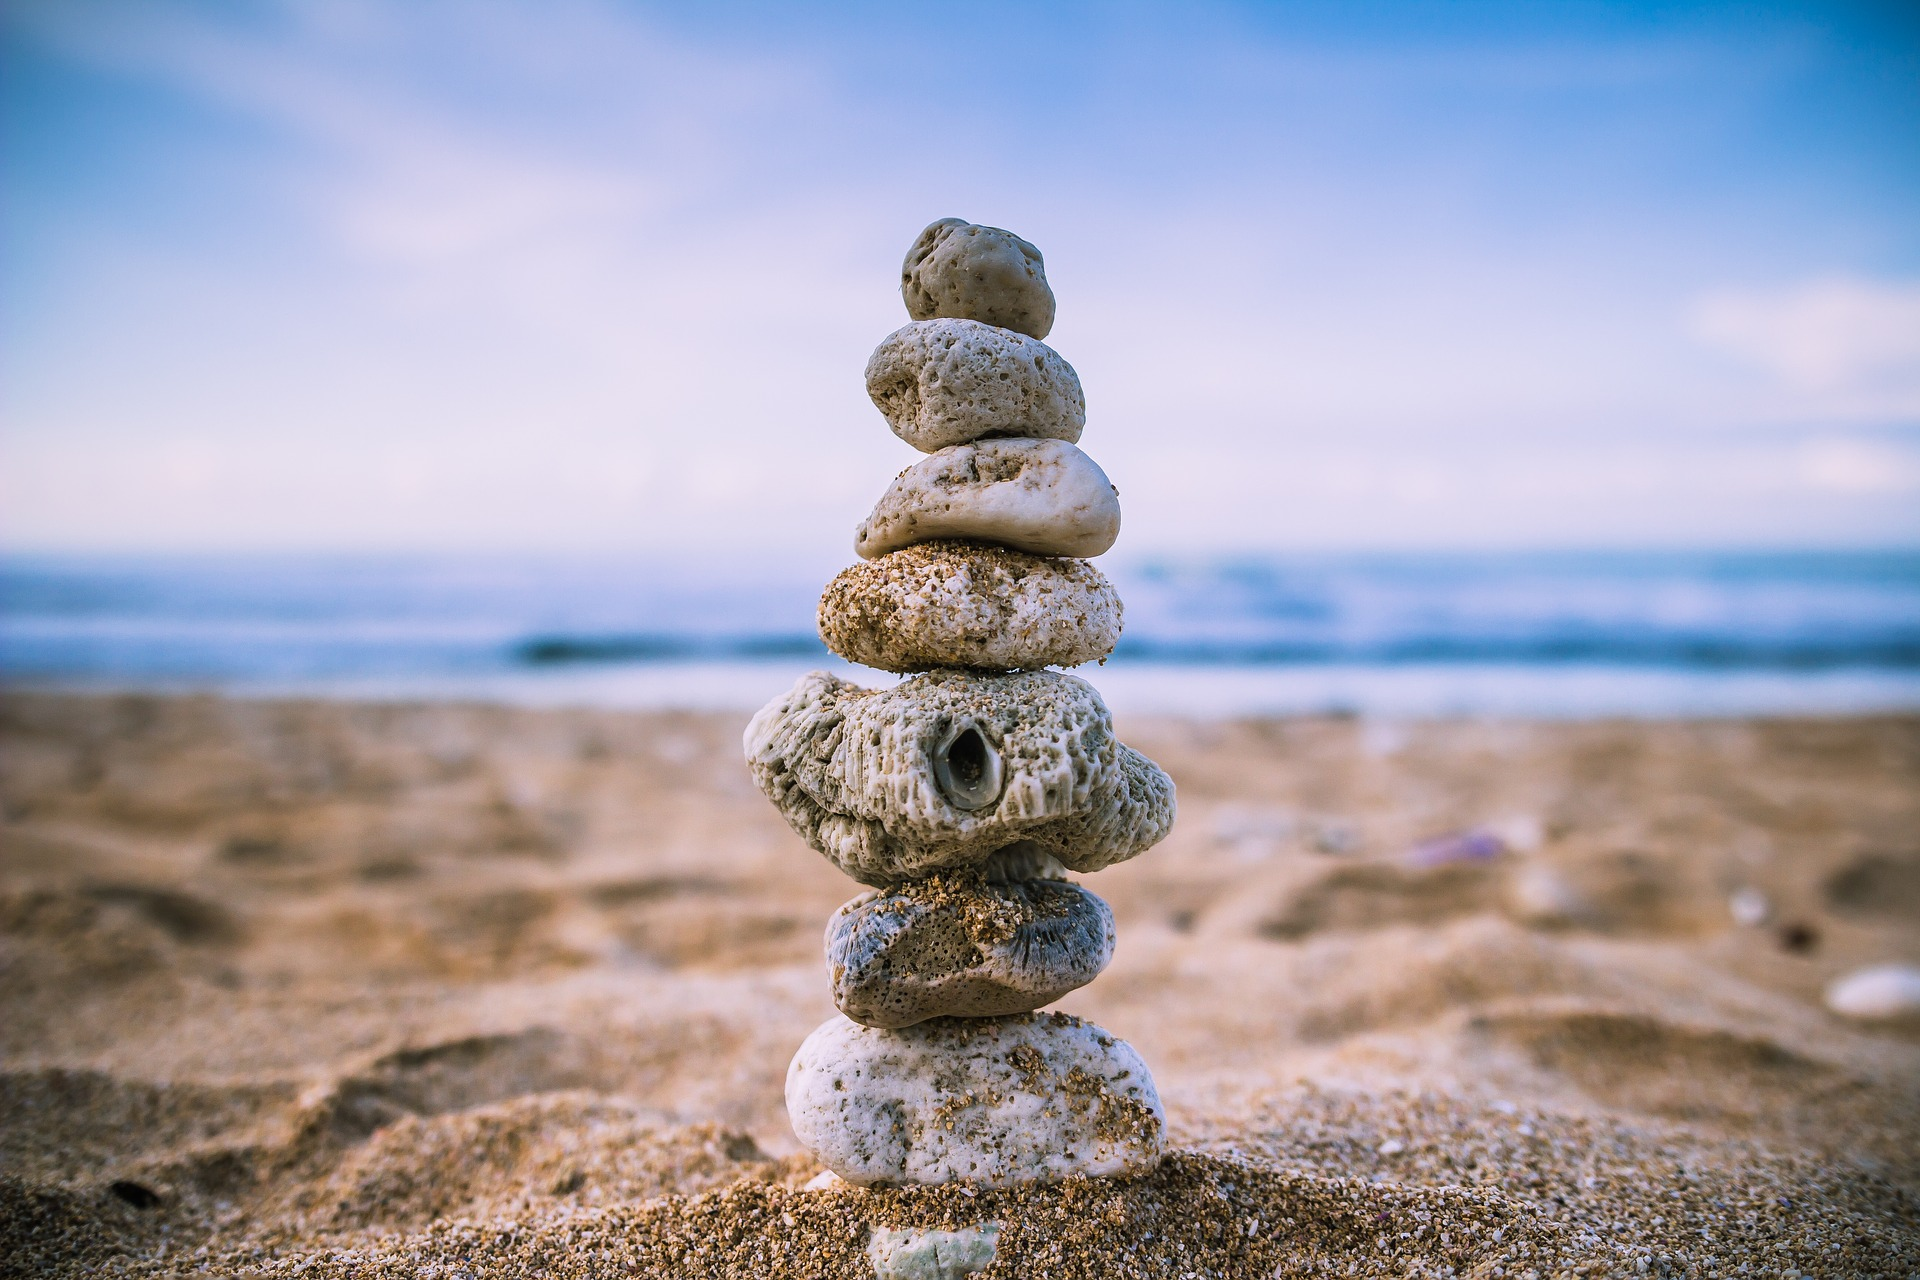 rocks balanced over each other in a vertical column